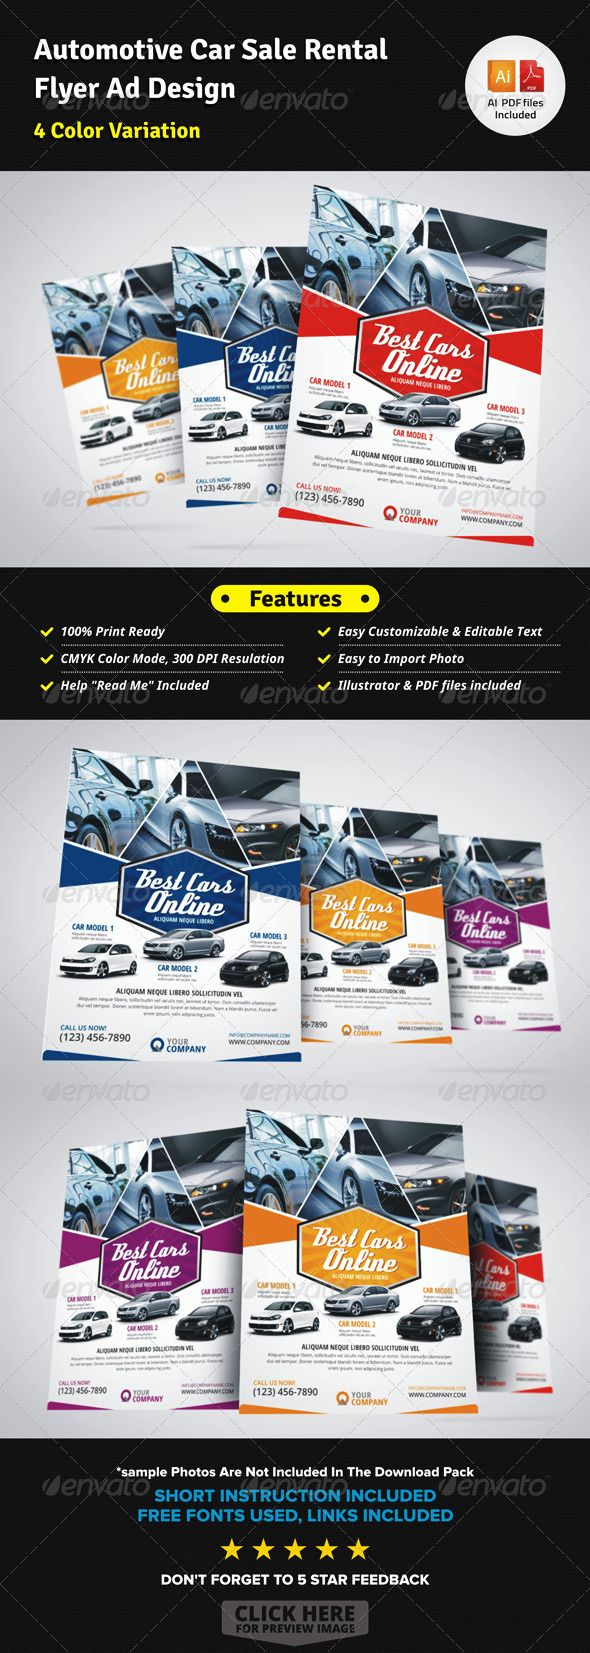 Automotive Car Sale Rental Flyer Ad – Car Ad Template